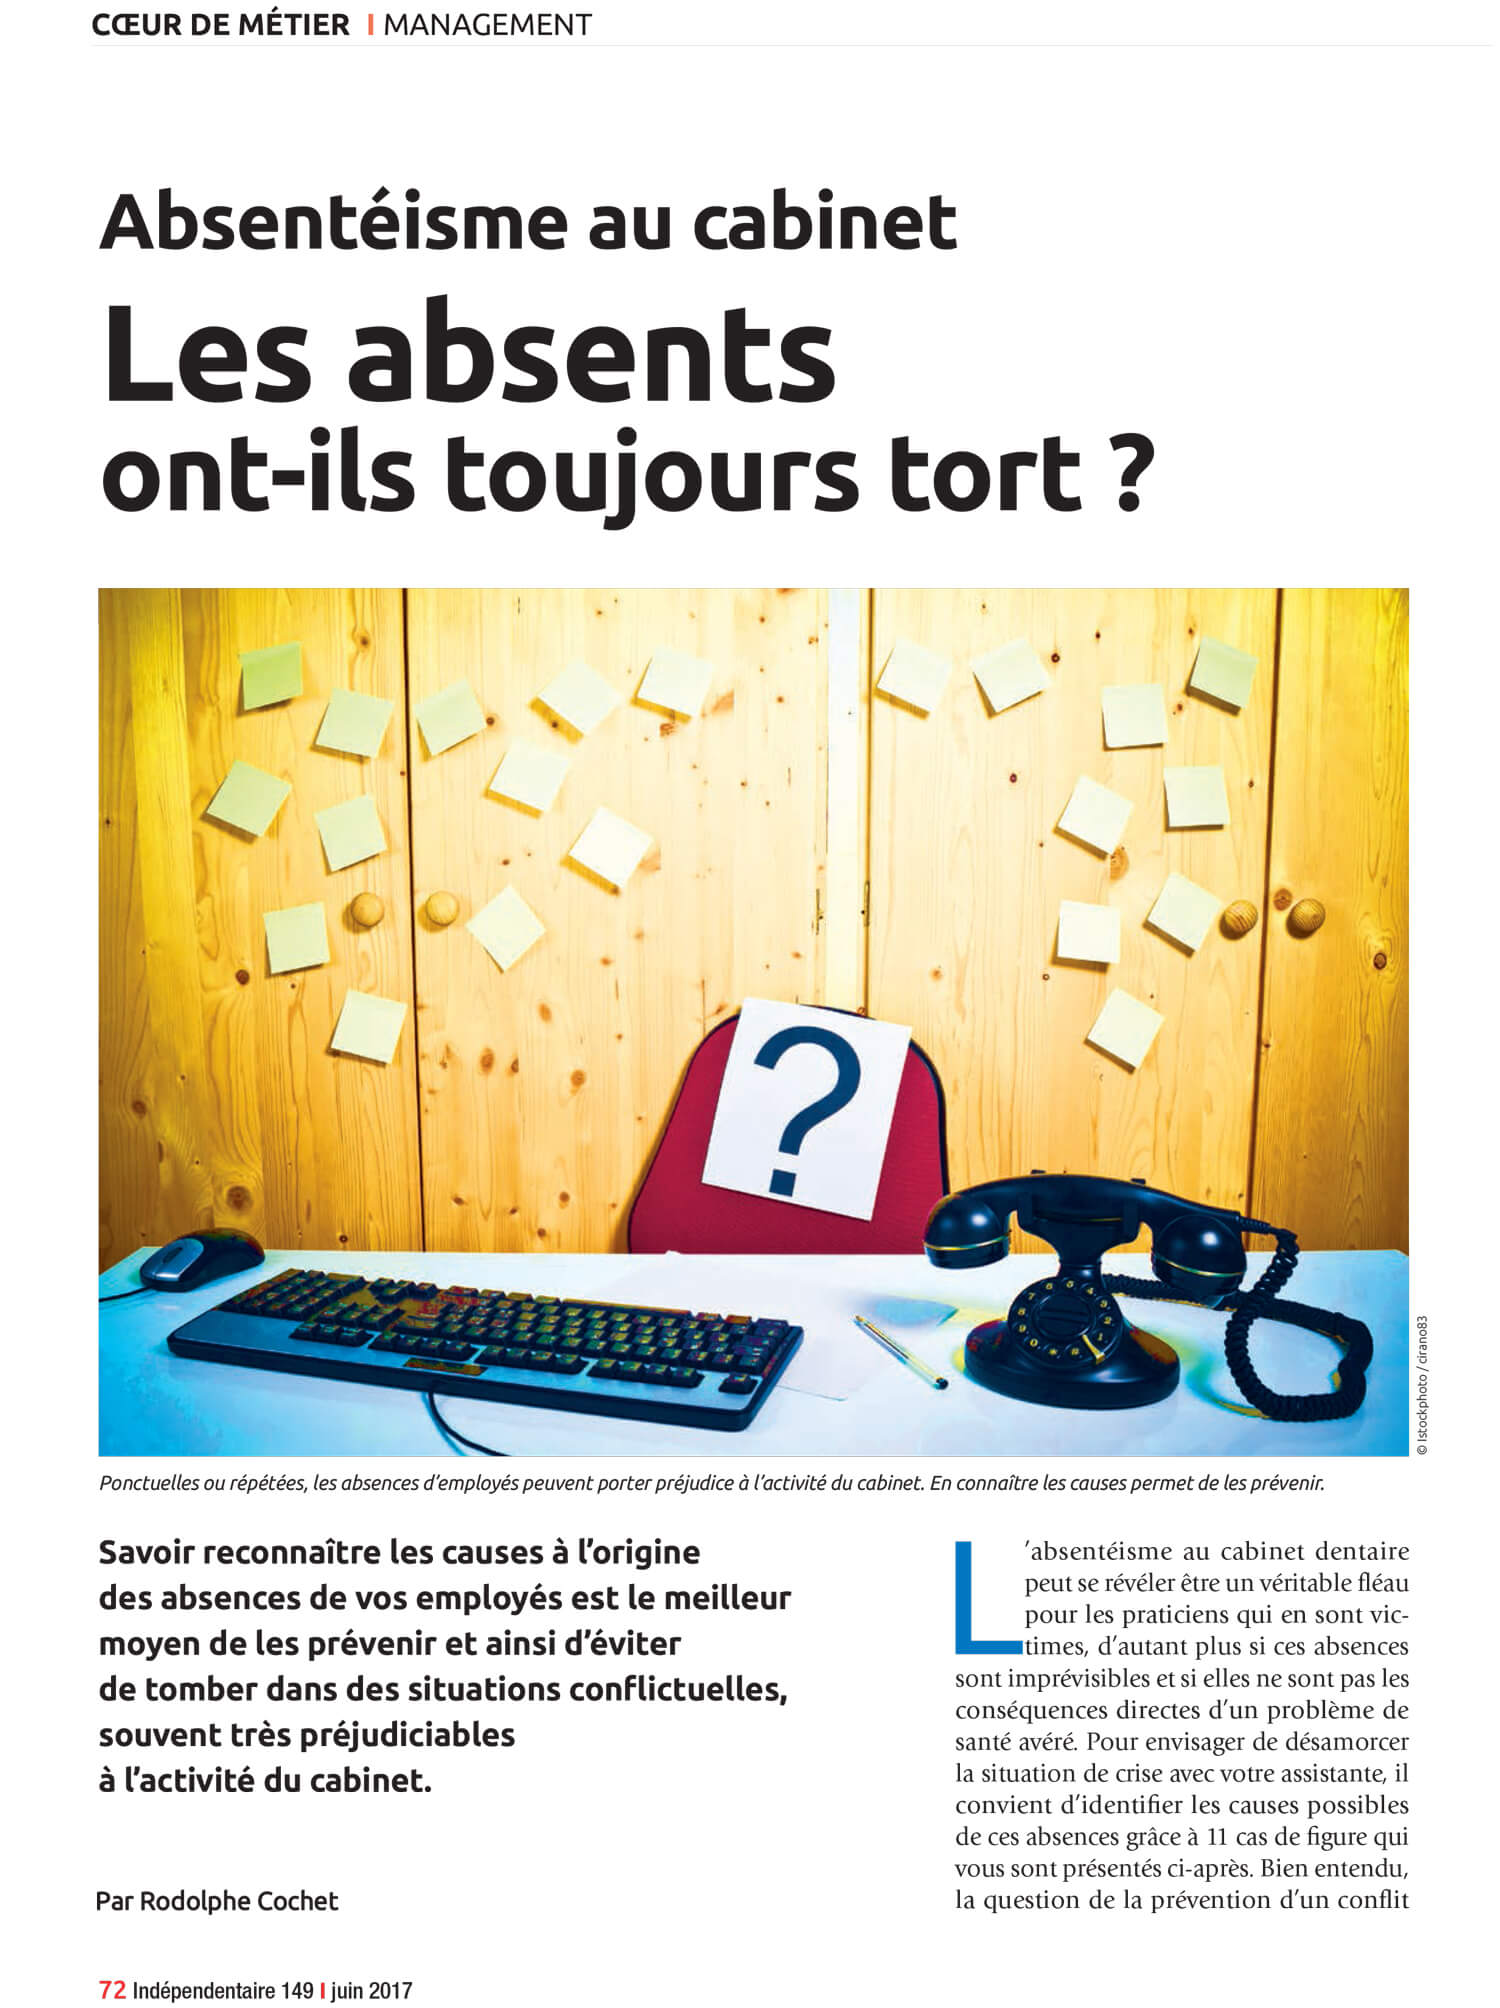 absenteisme-cabinet-dentaire-assistante-absence-arret-conge-maladie-rodolphe-cochet.jpg